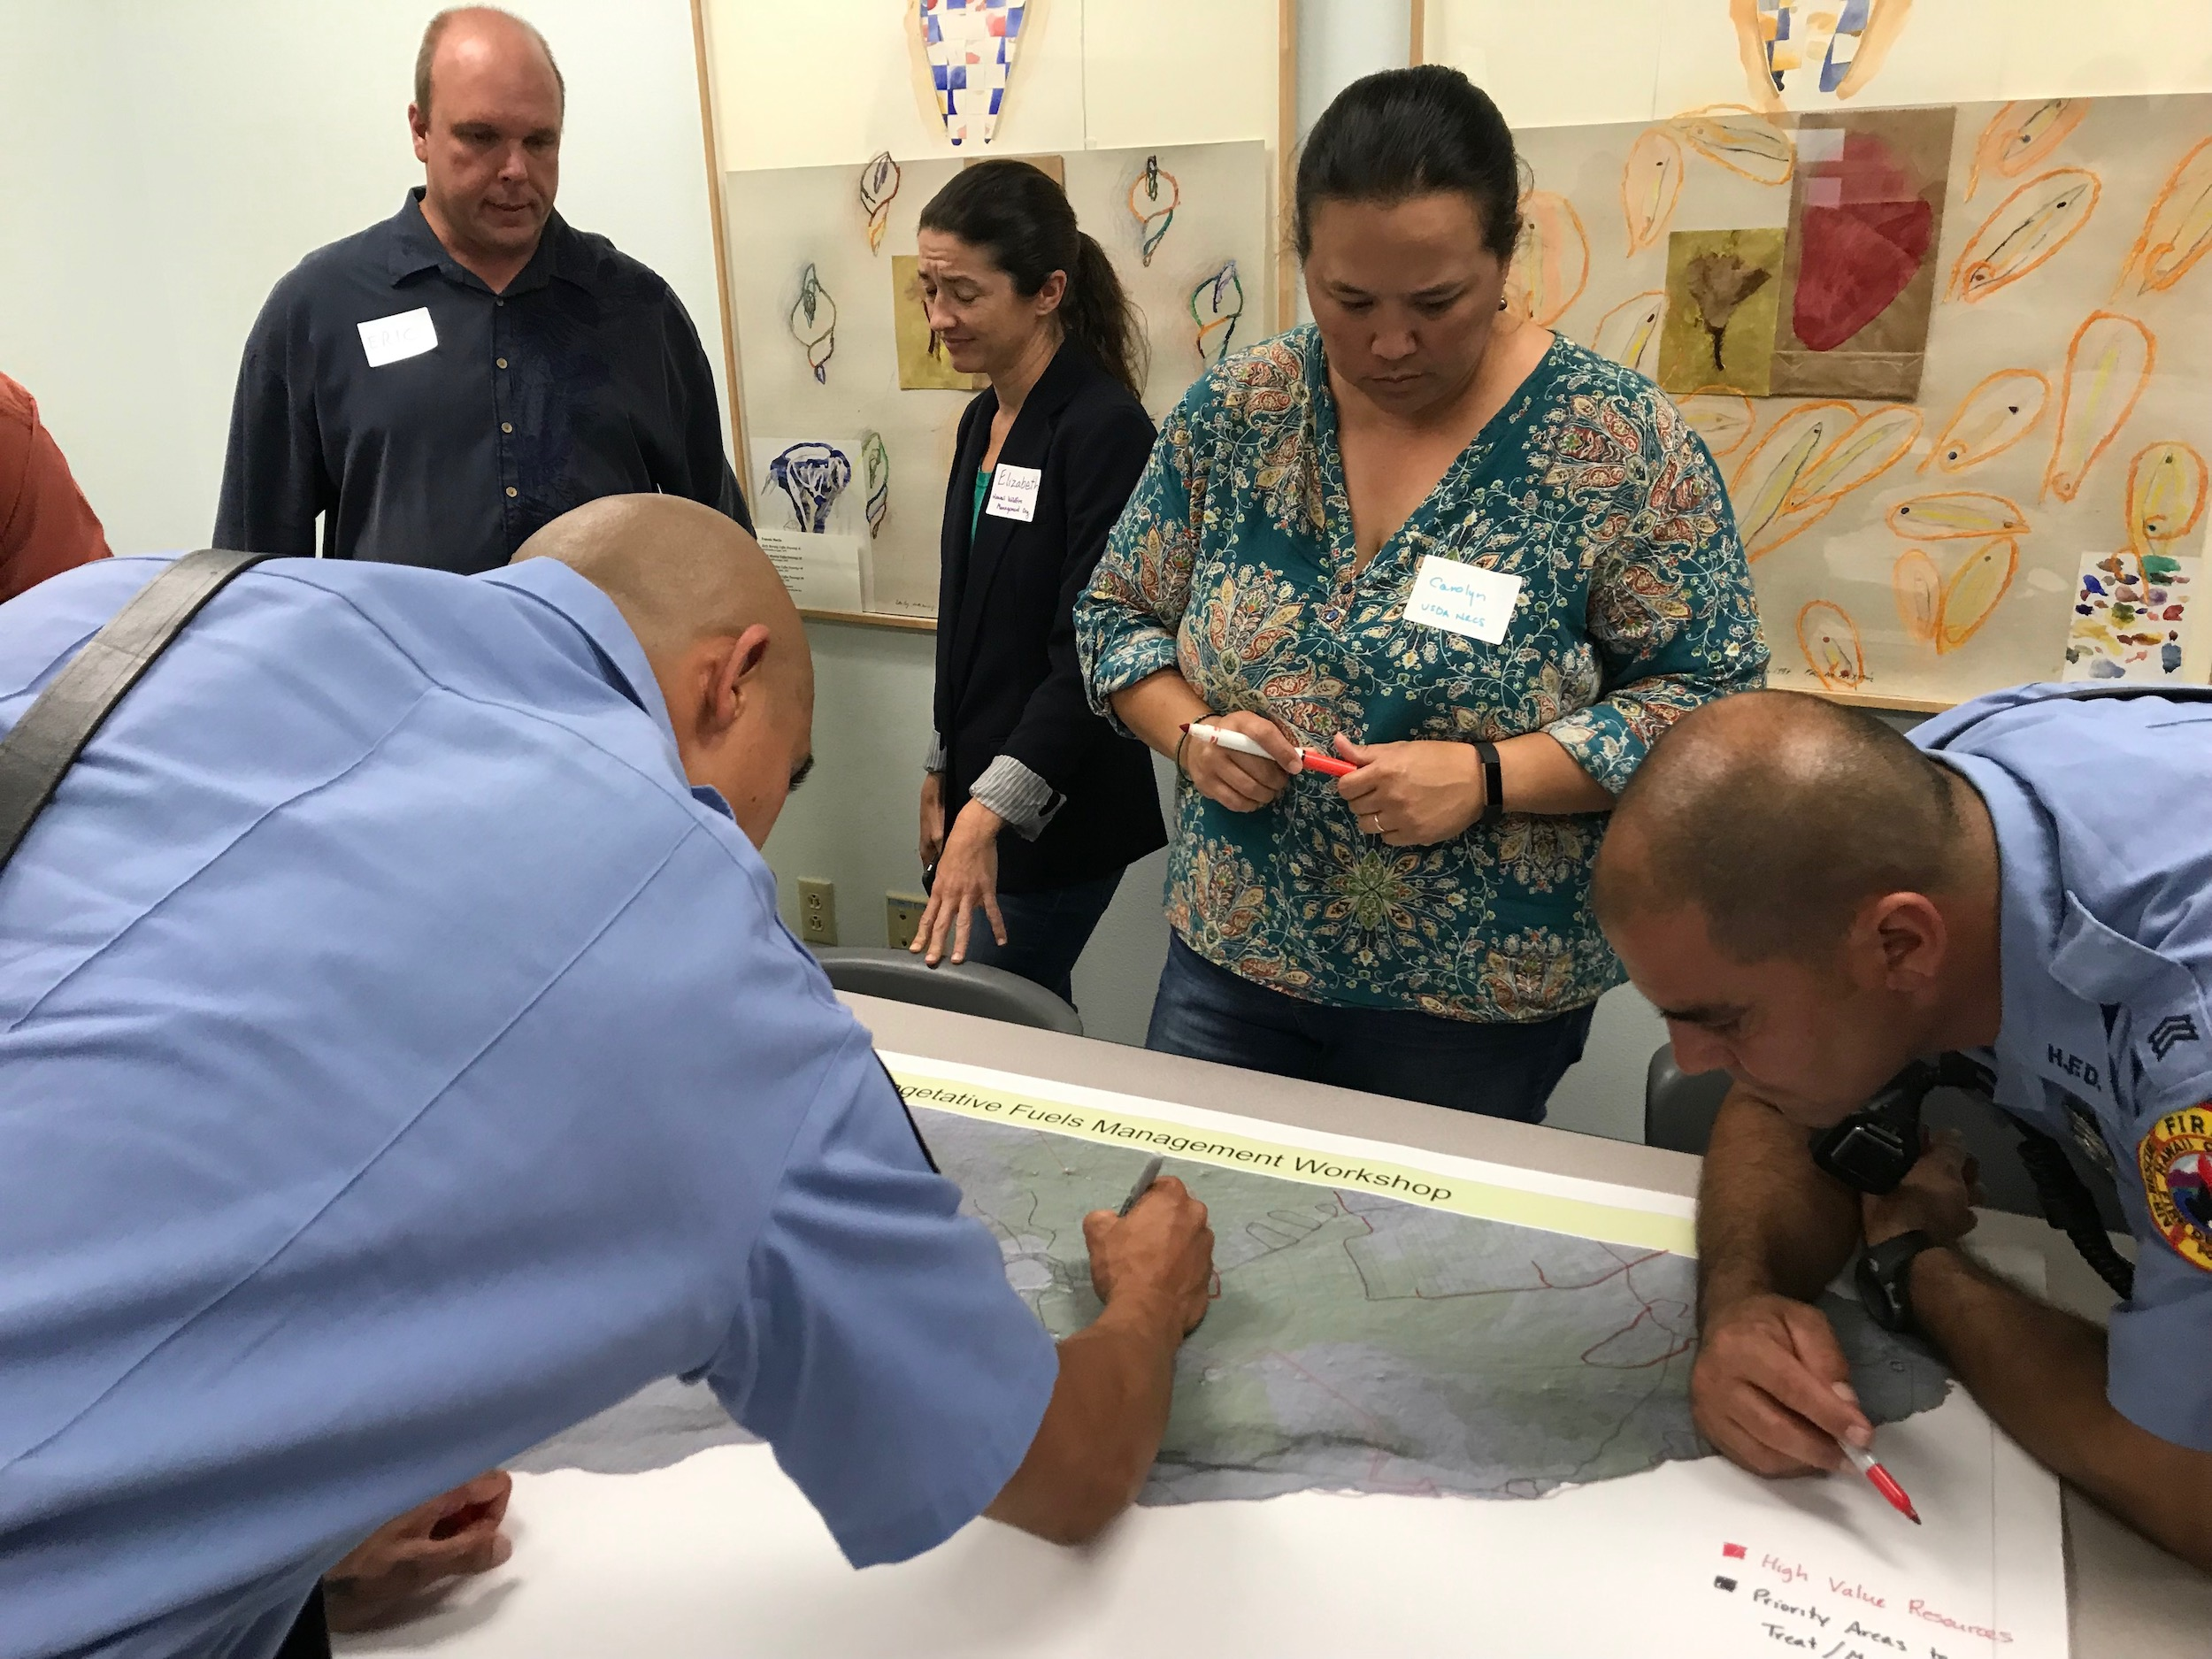 Hawaii Island Hilo Vegetative Fuels Management Collaborative Action Planning Workshop_2_22_2019_5.jpg